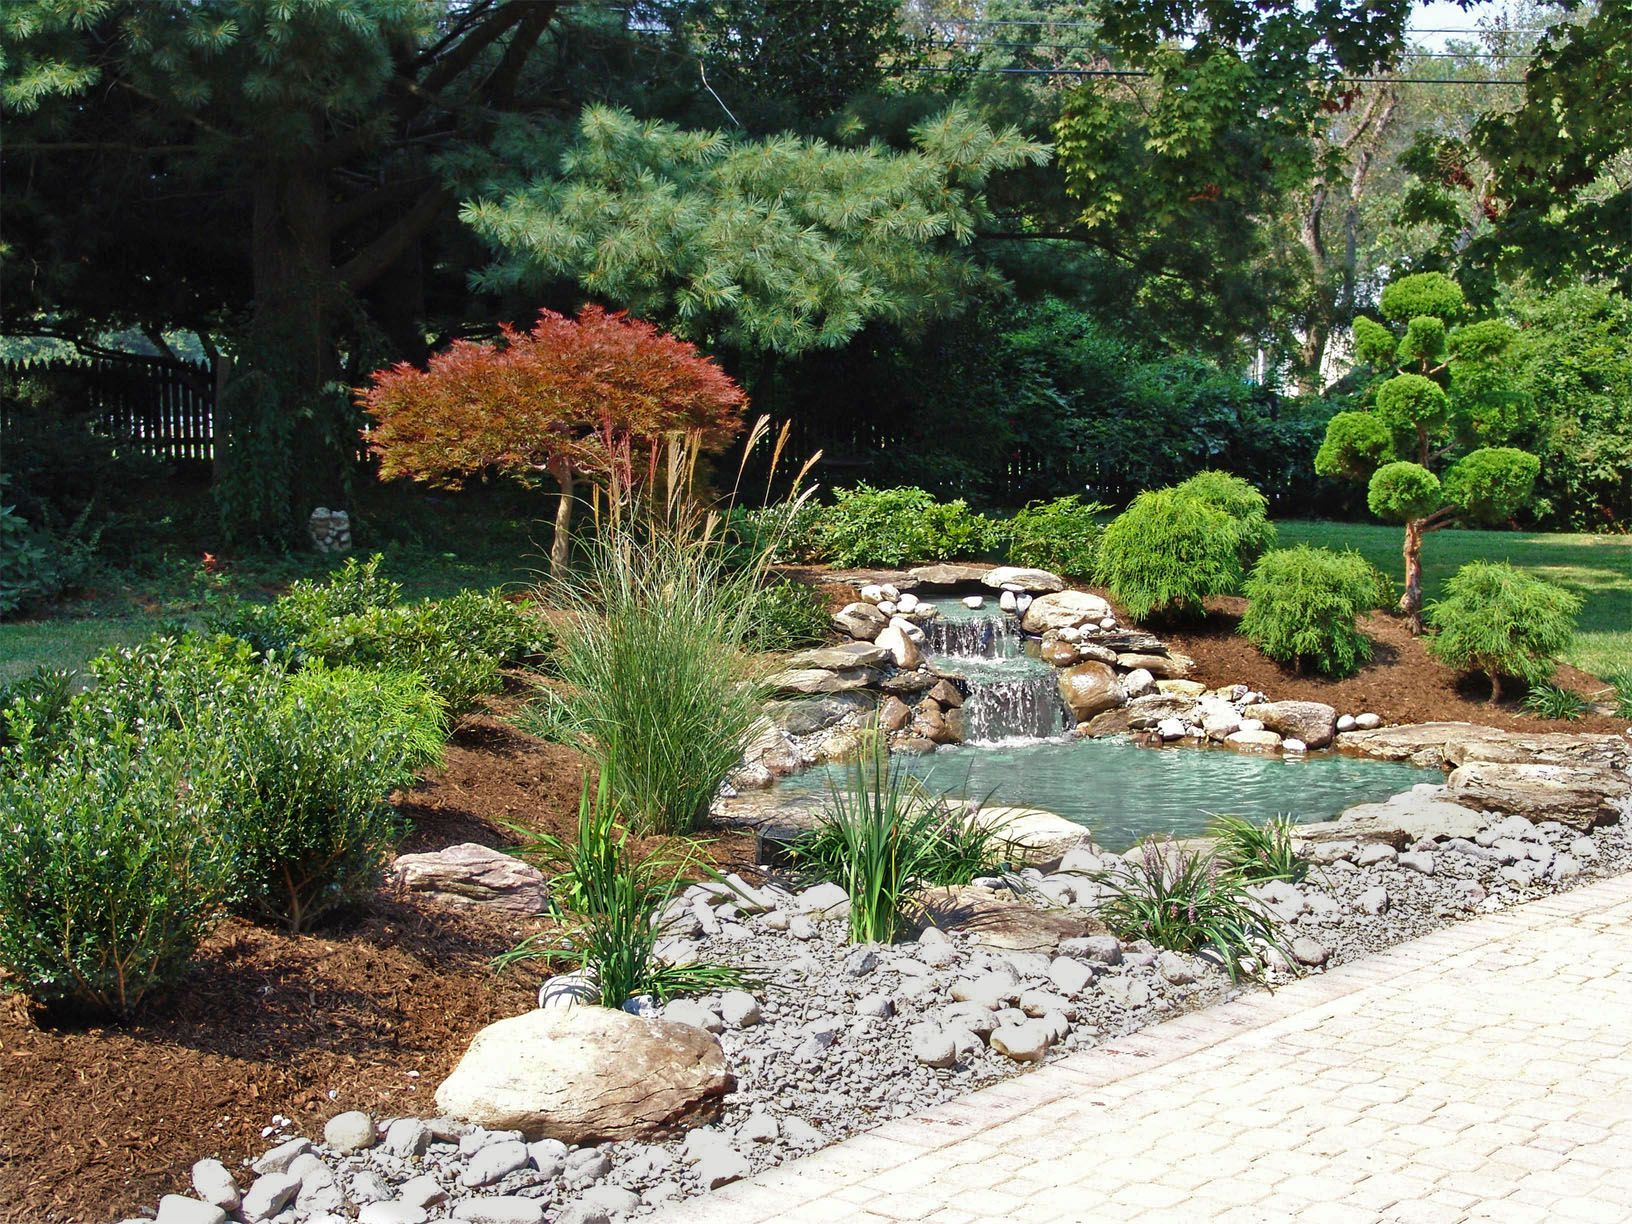 Japanese garden landscape design with waterfall and pond by lee 39 s oriental landscape art - Oriental garden design ideas ...